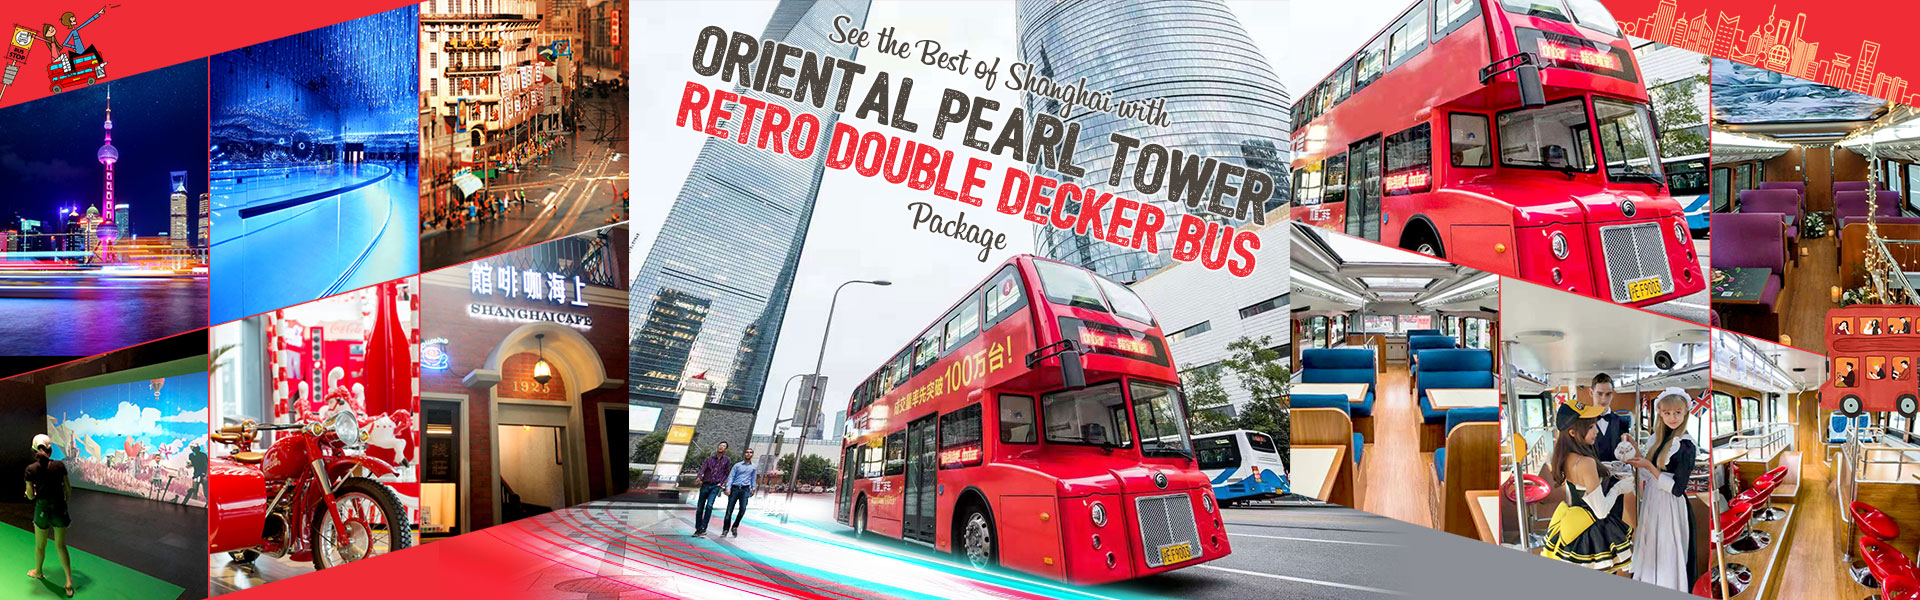 See the Best of Shanghai with Oriental Pearl Tower + Retro Double Decker Bus Package for CTA